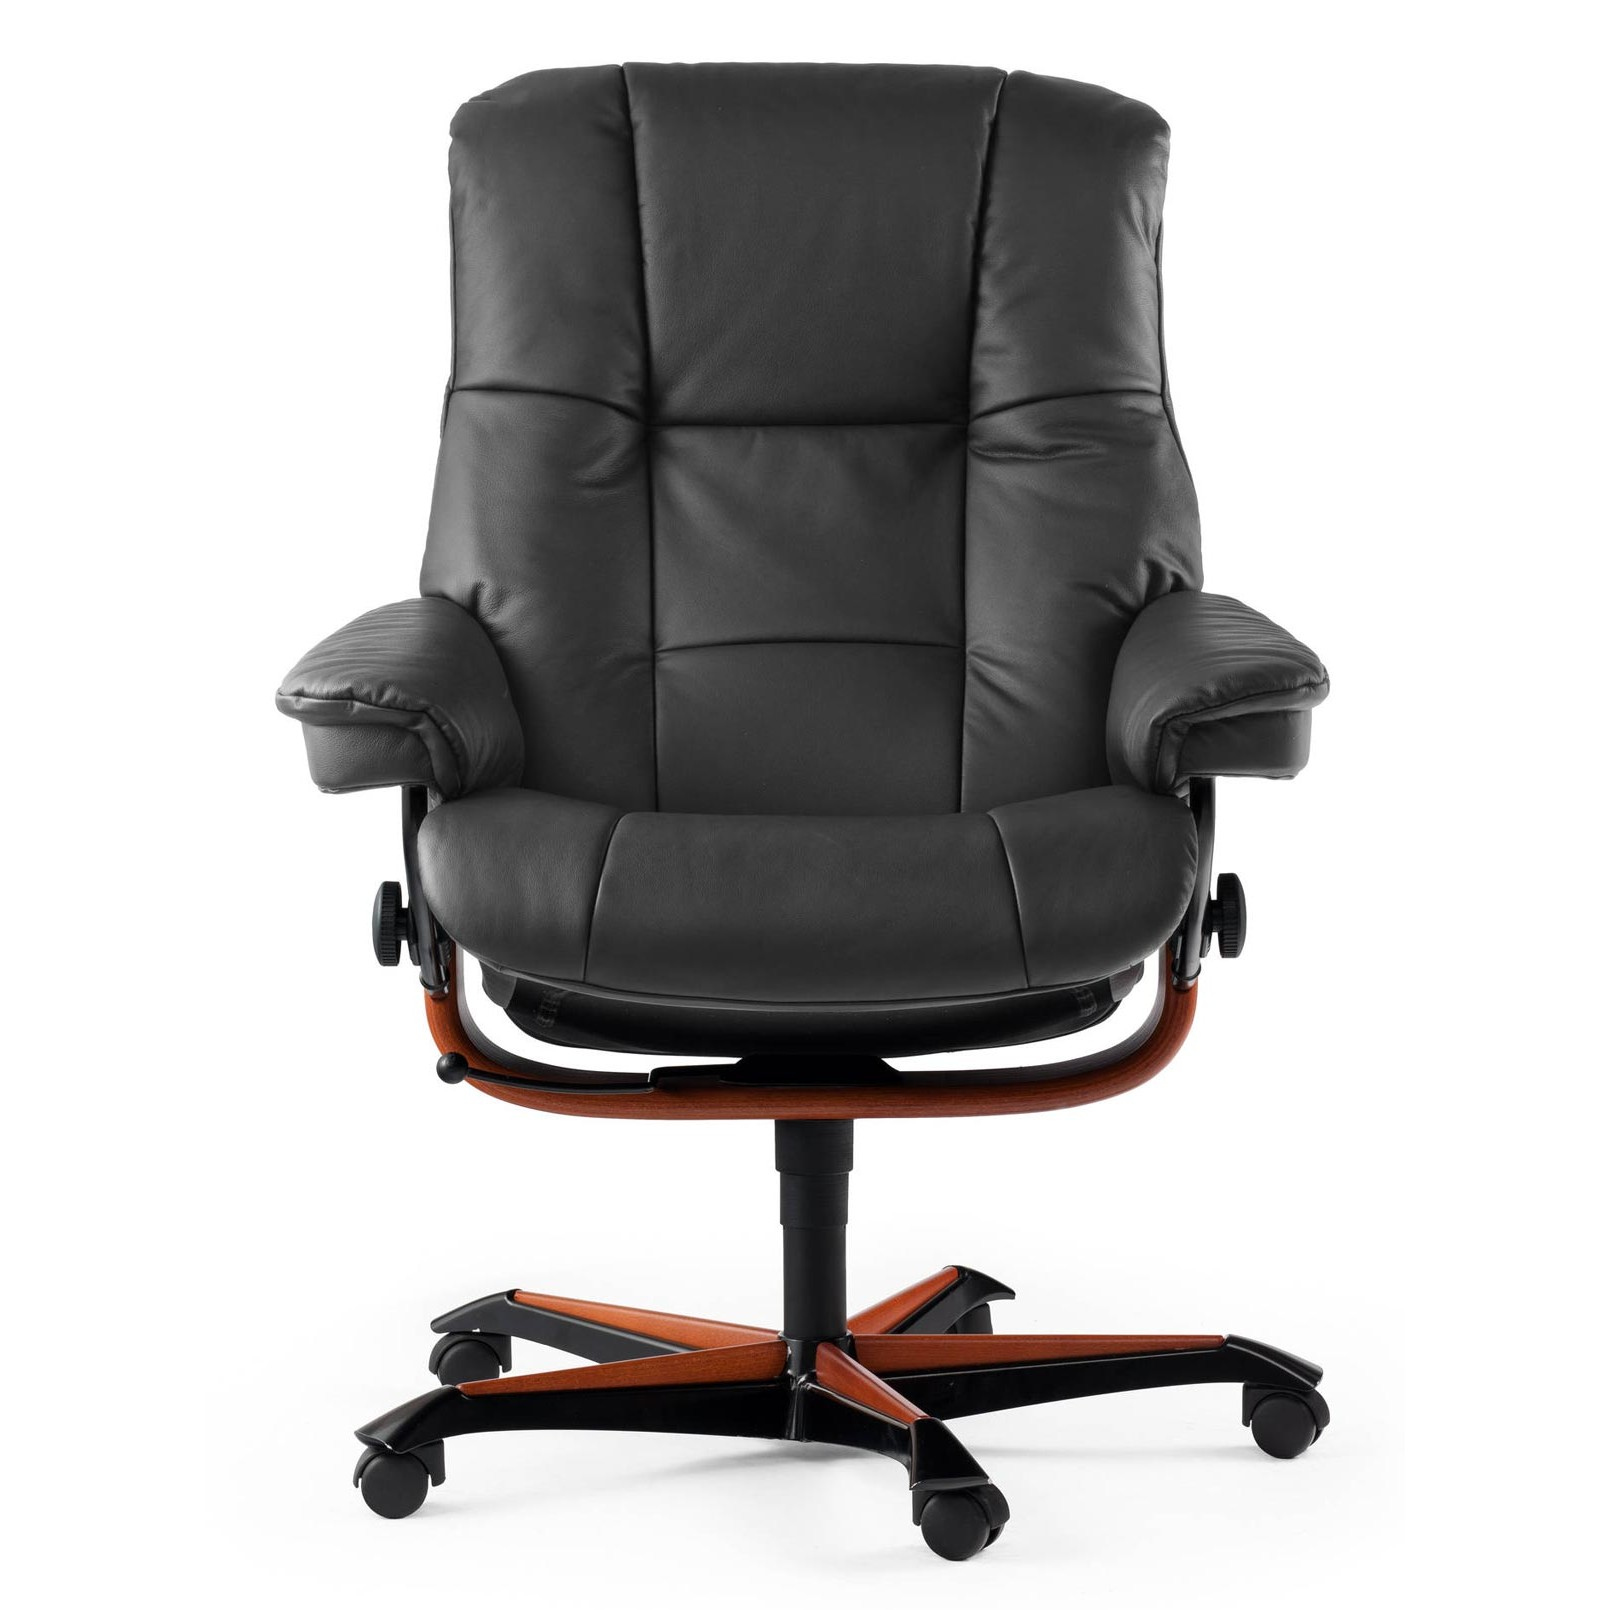 Stressless Office Chair Stressless Mayfair Office Chair From 2 595 00 By